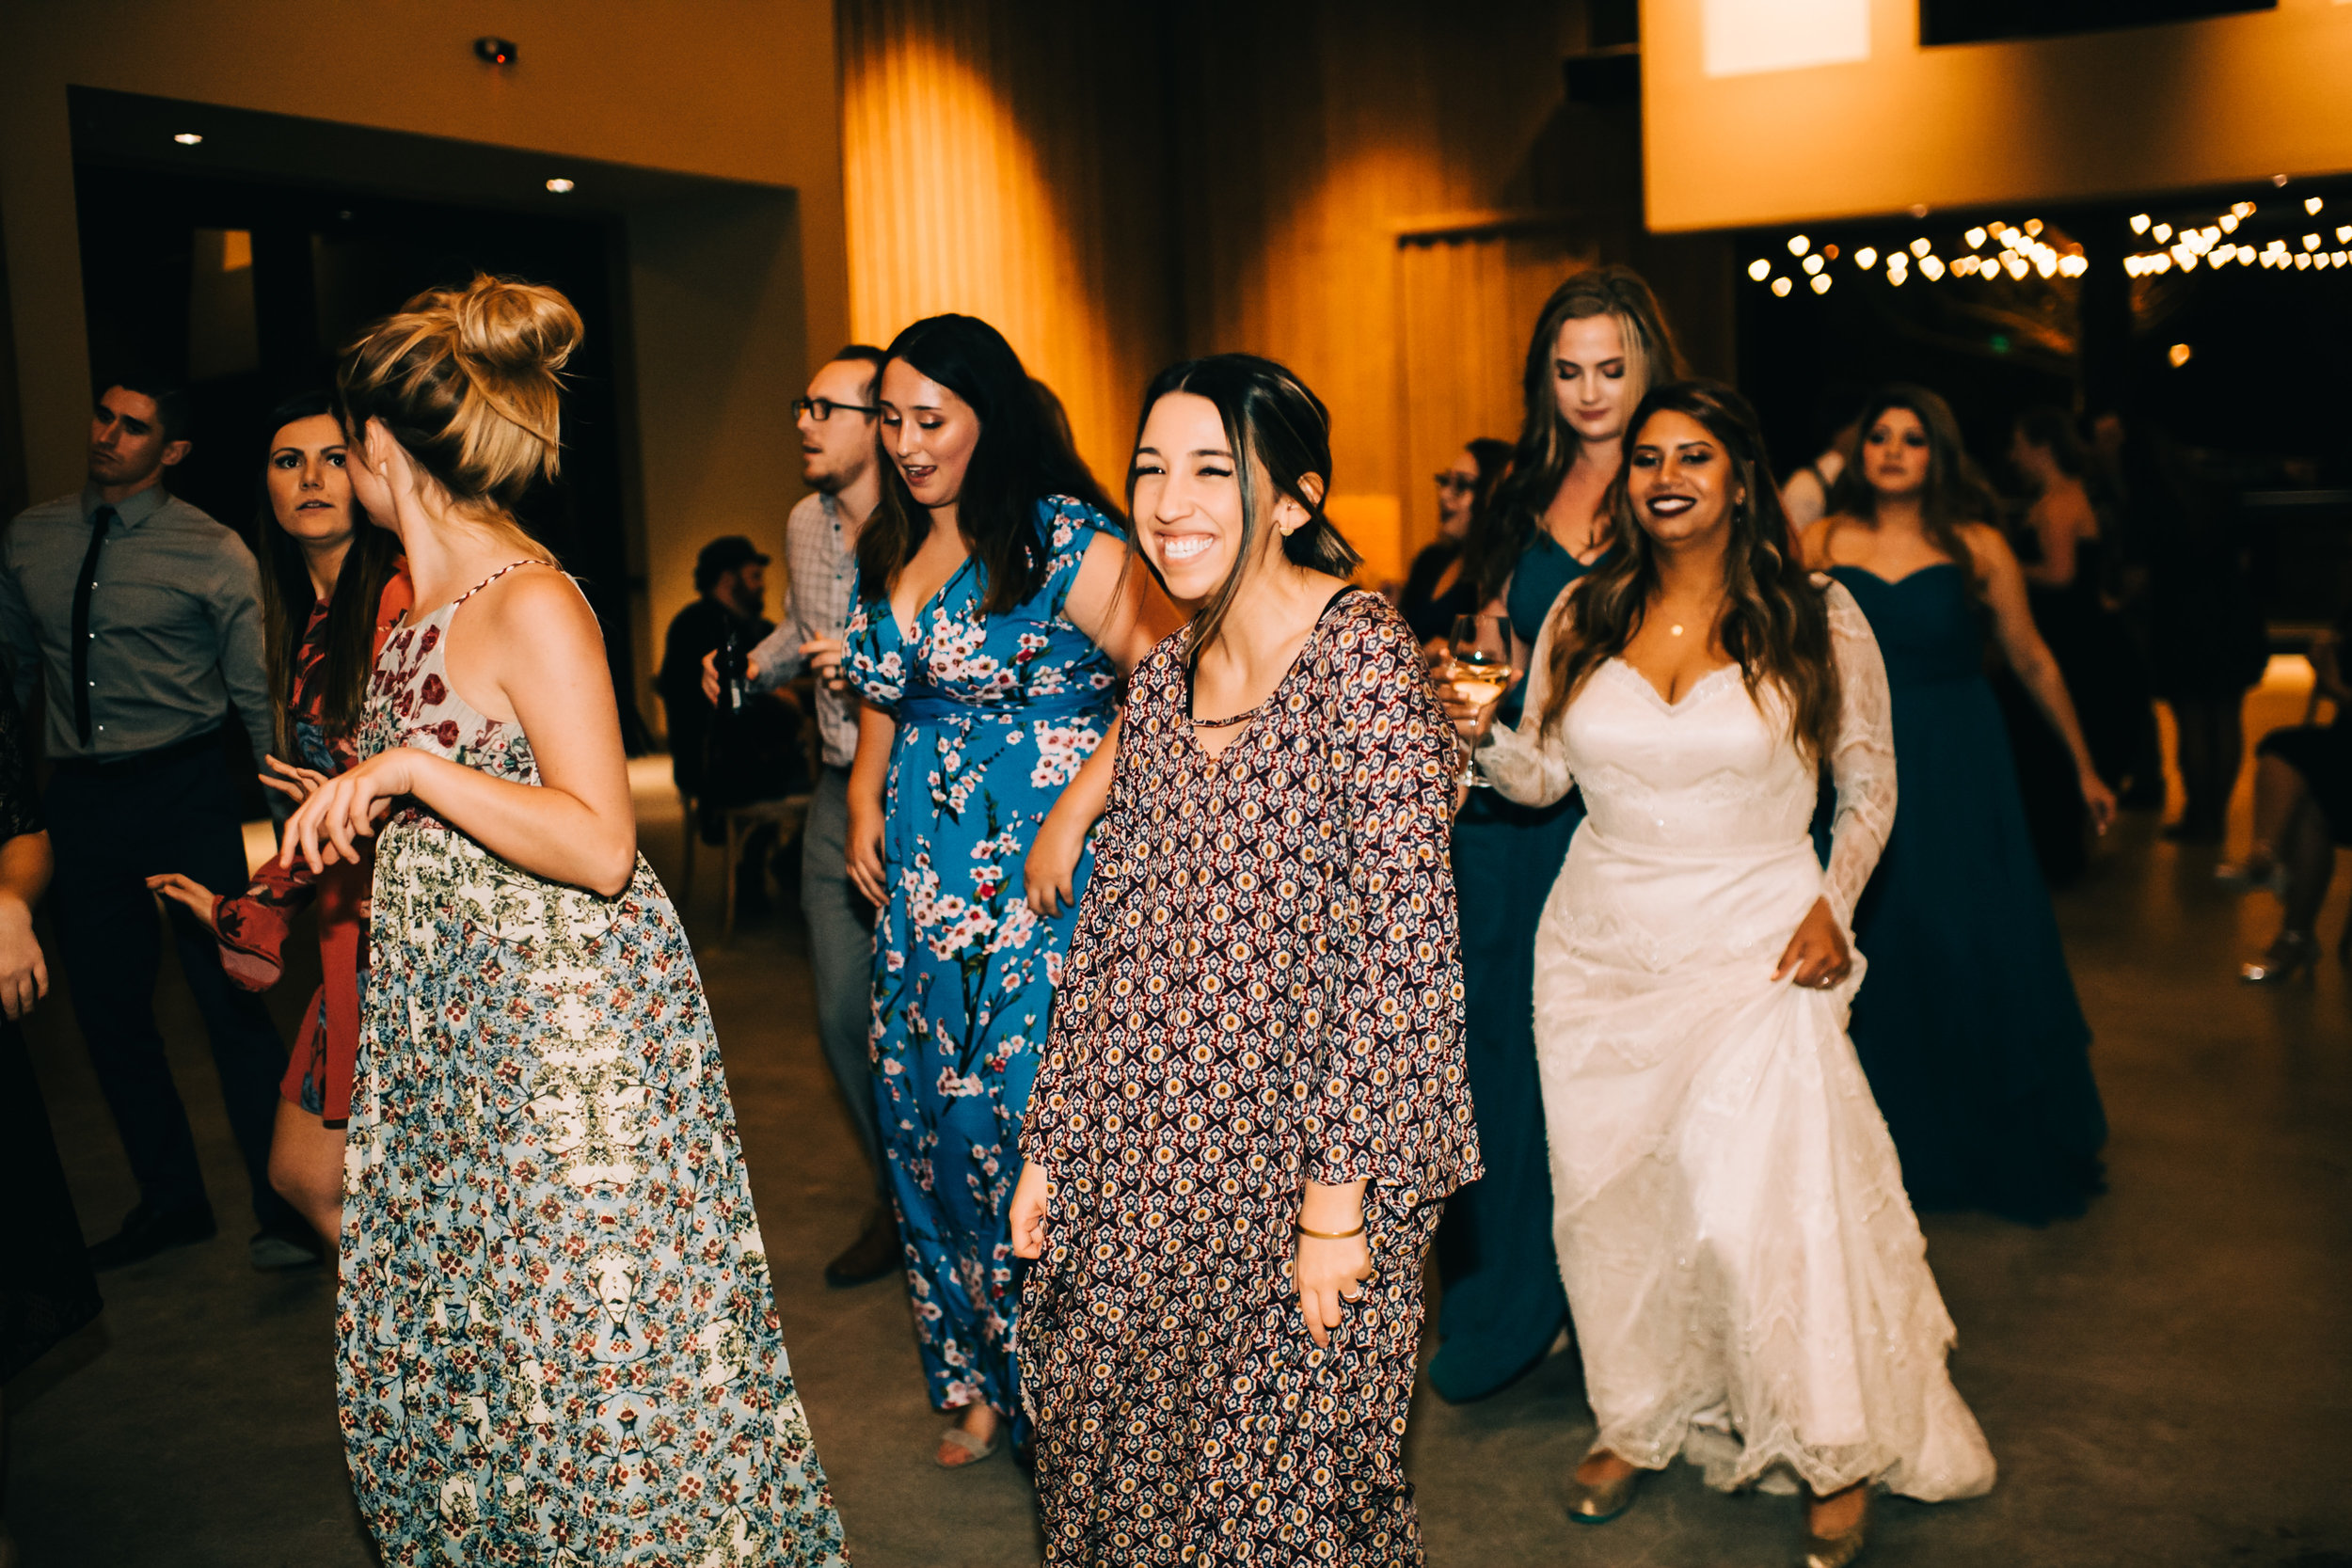 bay area nontraditional wedding photographer southern california boho wedding love light magic san francisco oakland northern california-1336.jpg